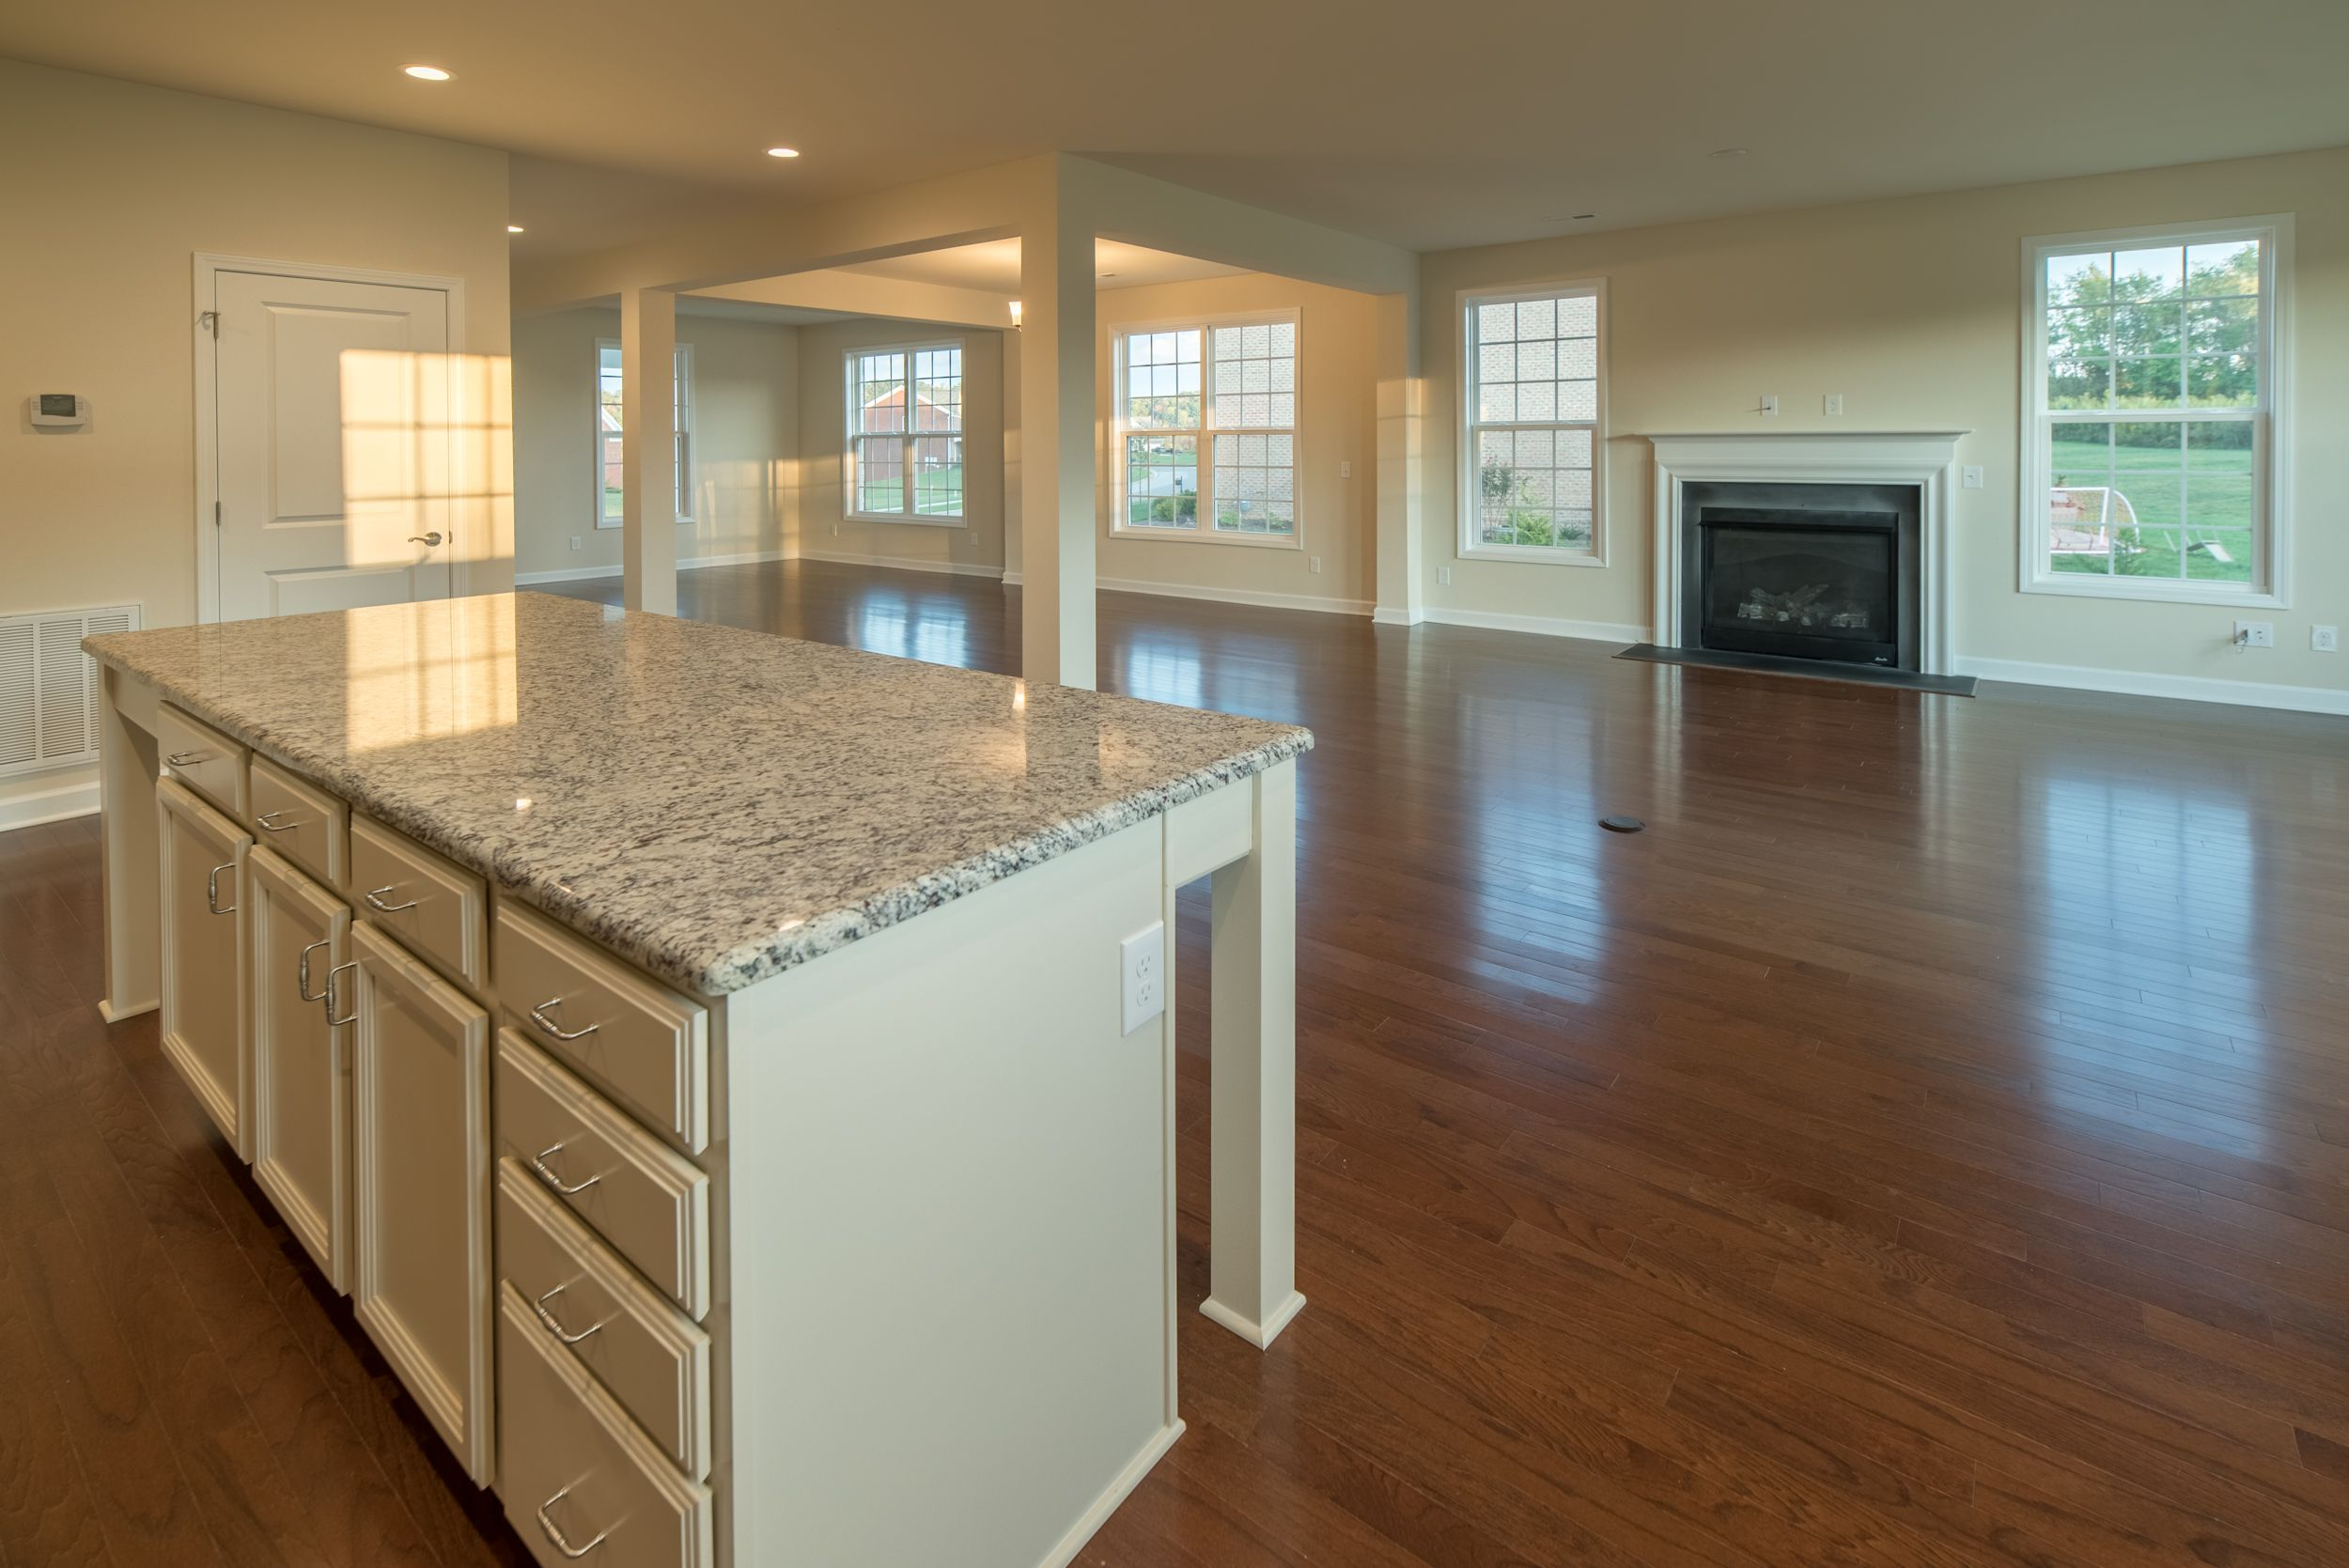 Kitchen featured in The Eggleston By Stateson Homes in Blacksburg, VA